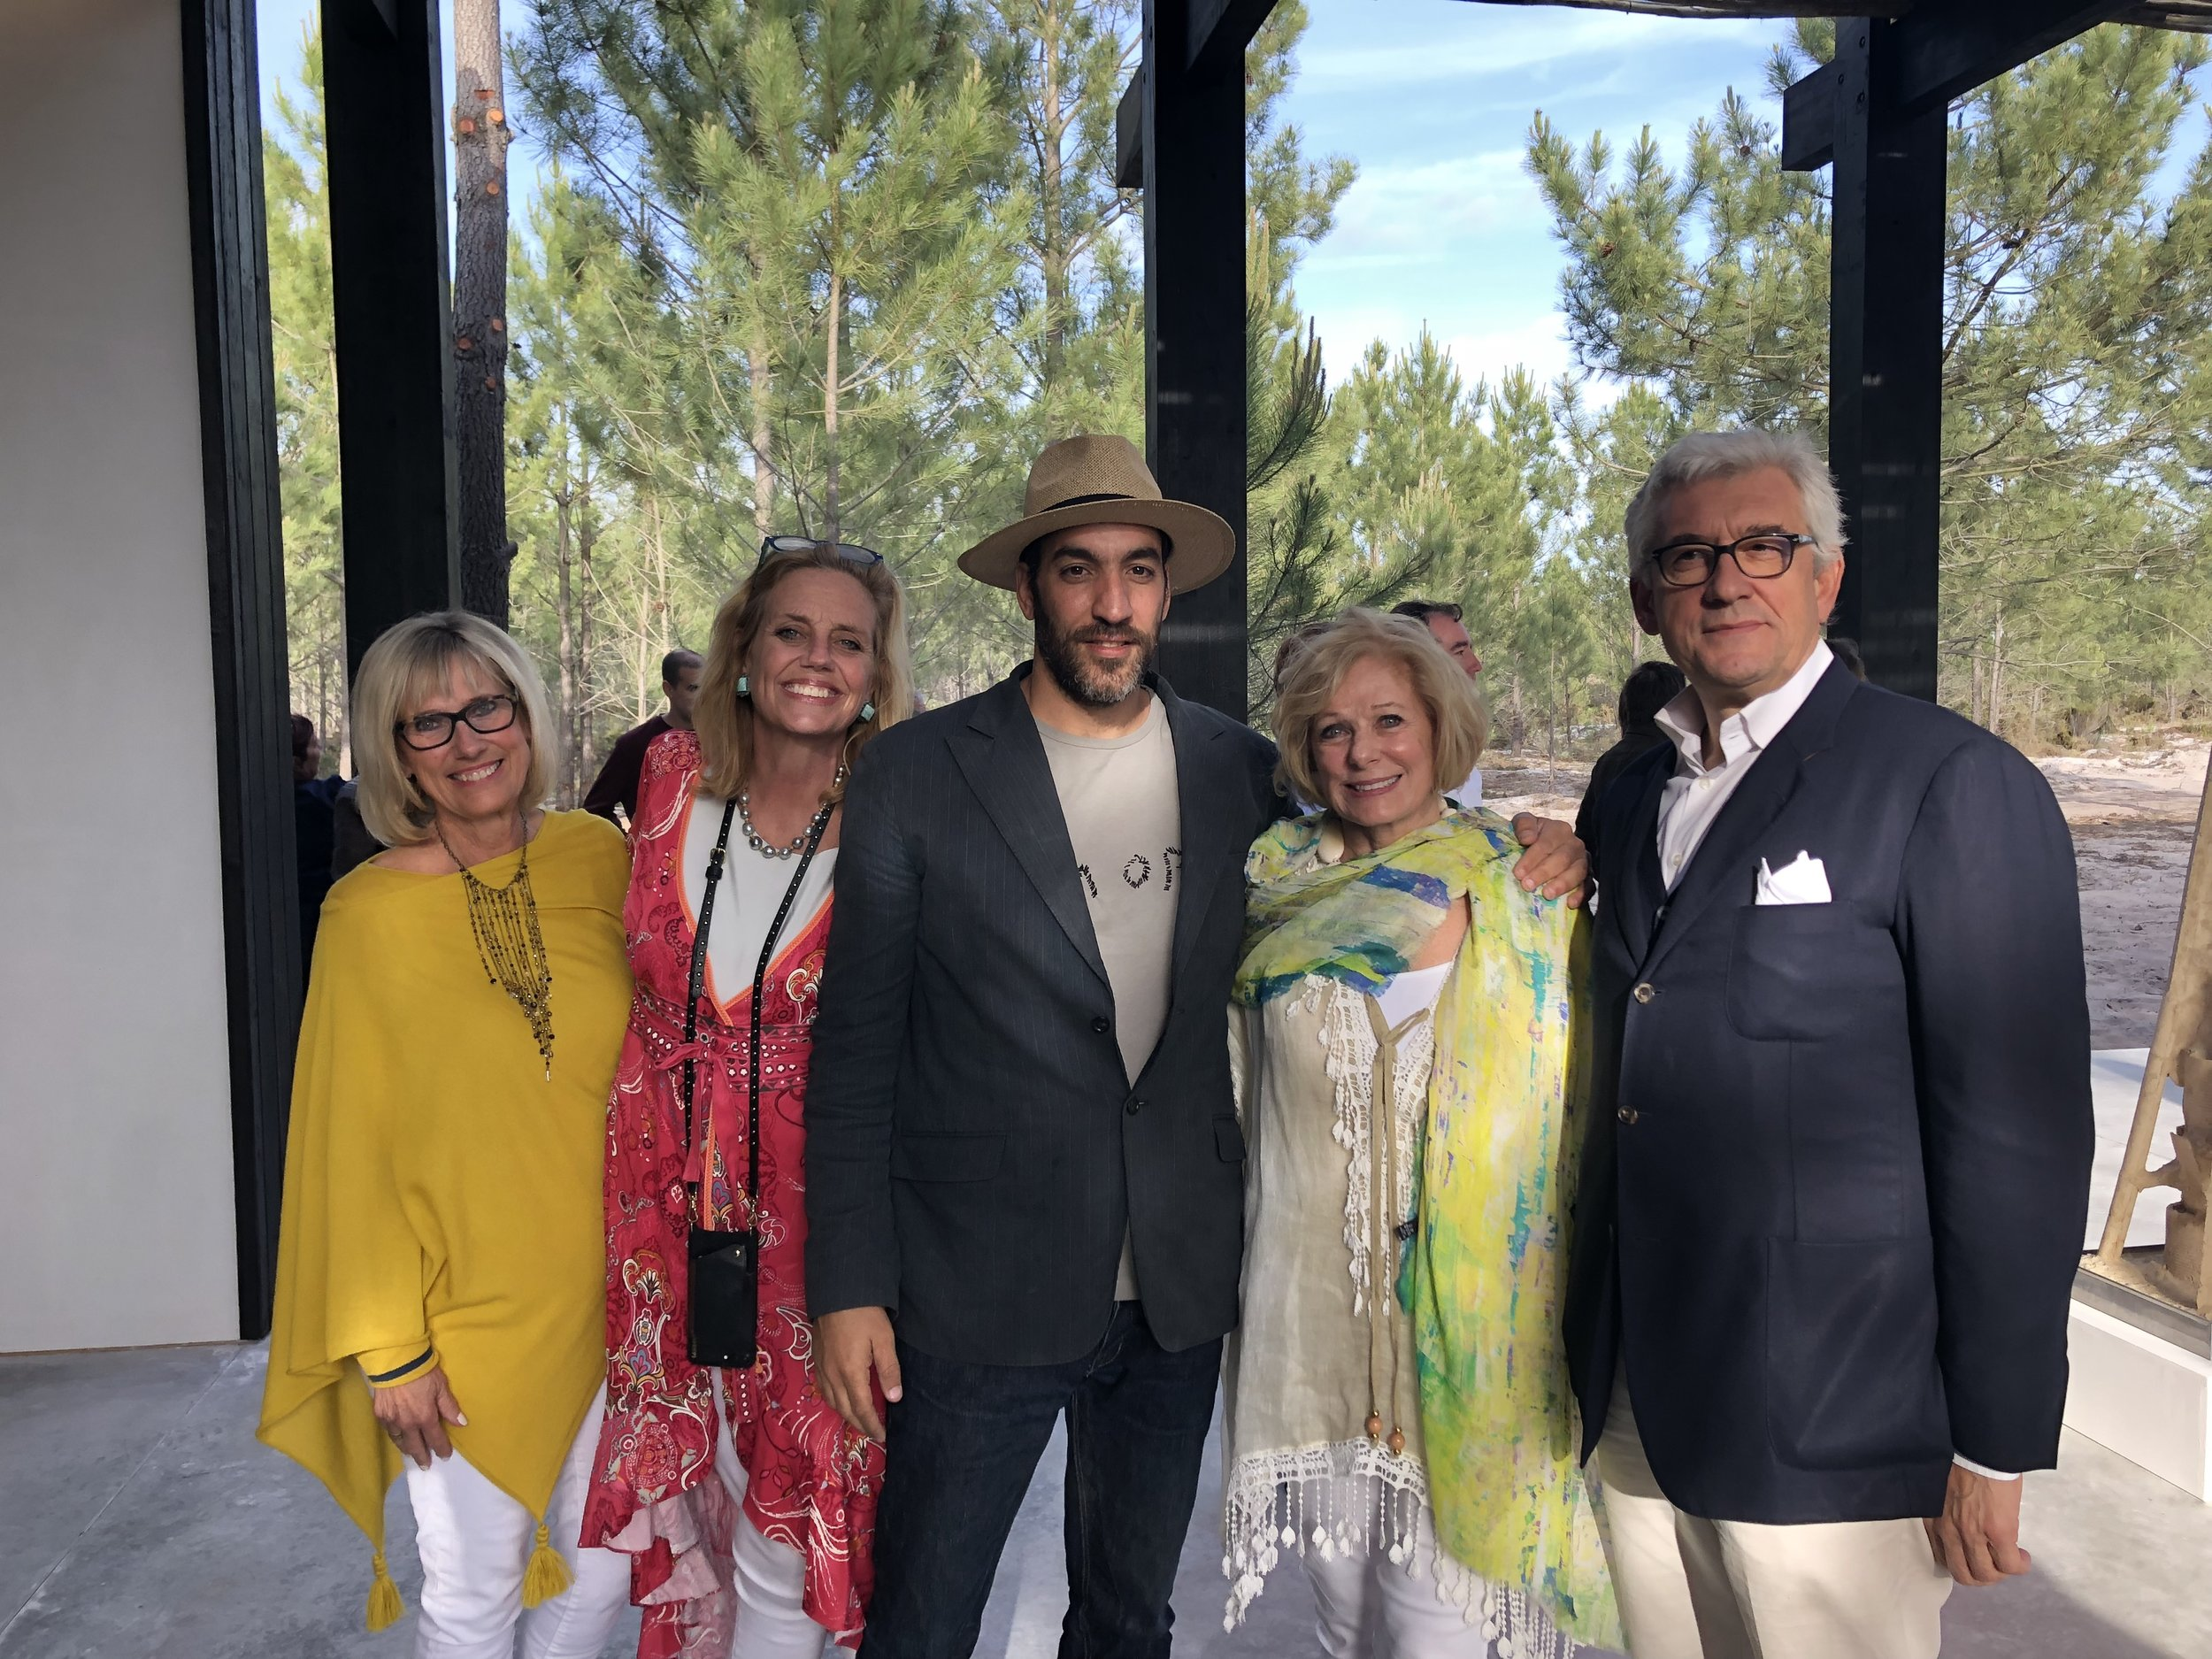 Sandy Bowen, Geralyn Dreyfous, Miguel Carvalho, Susan Swartz, and Walter Smerling pictured at the Art Pavilion at Melides Art.